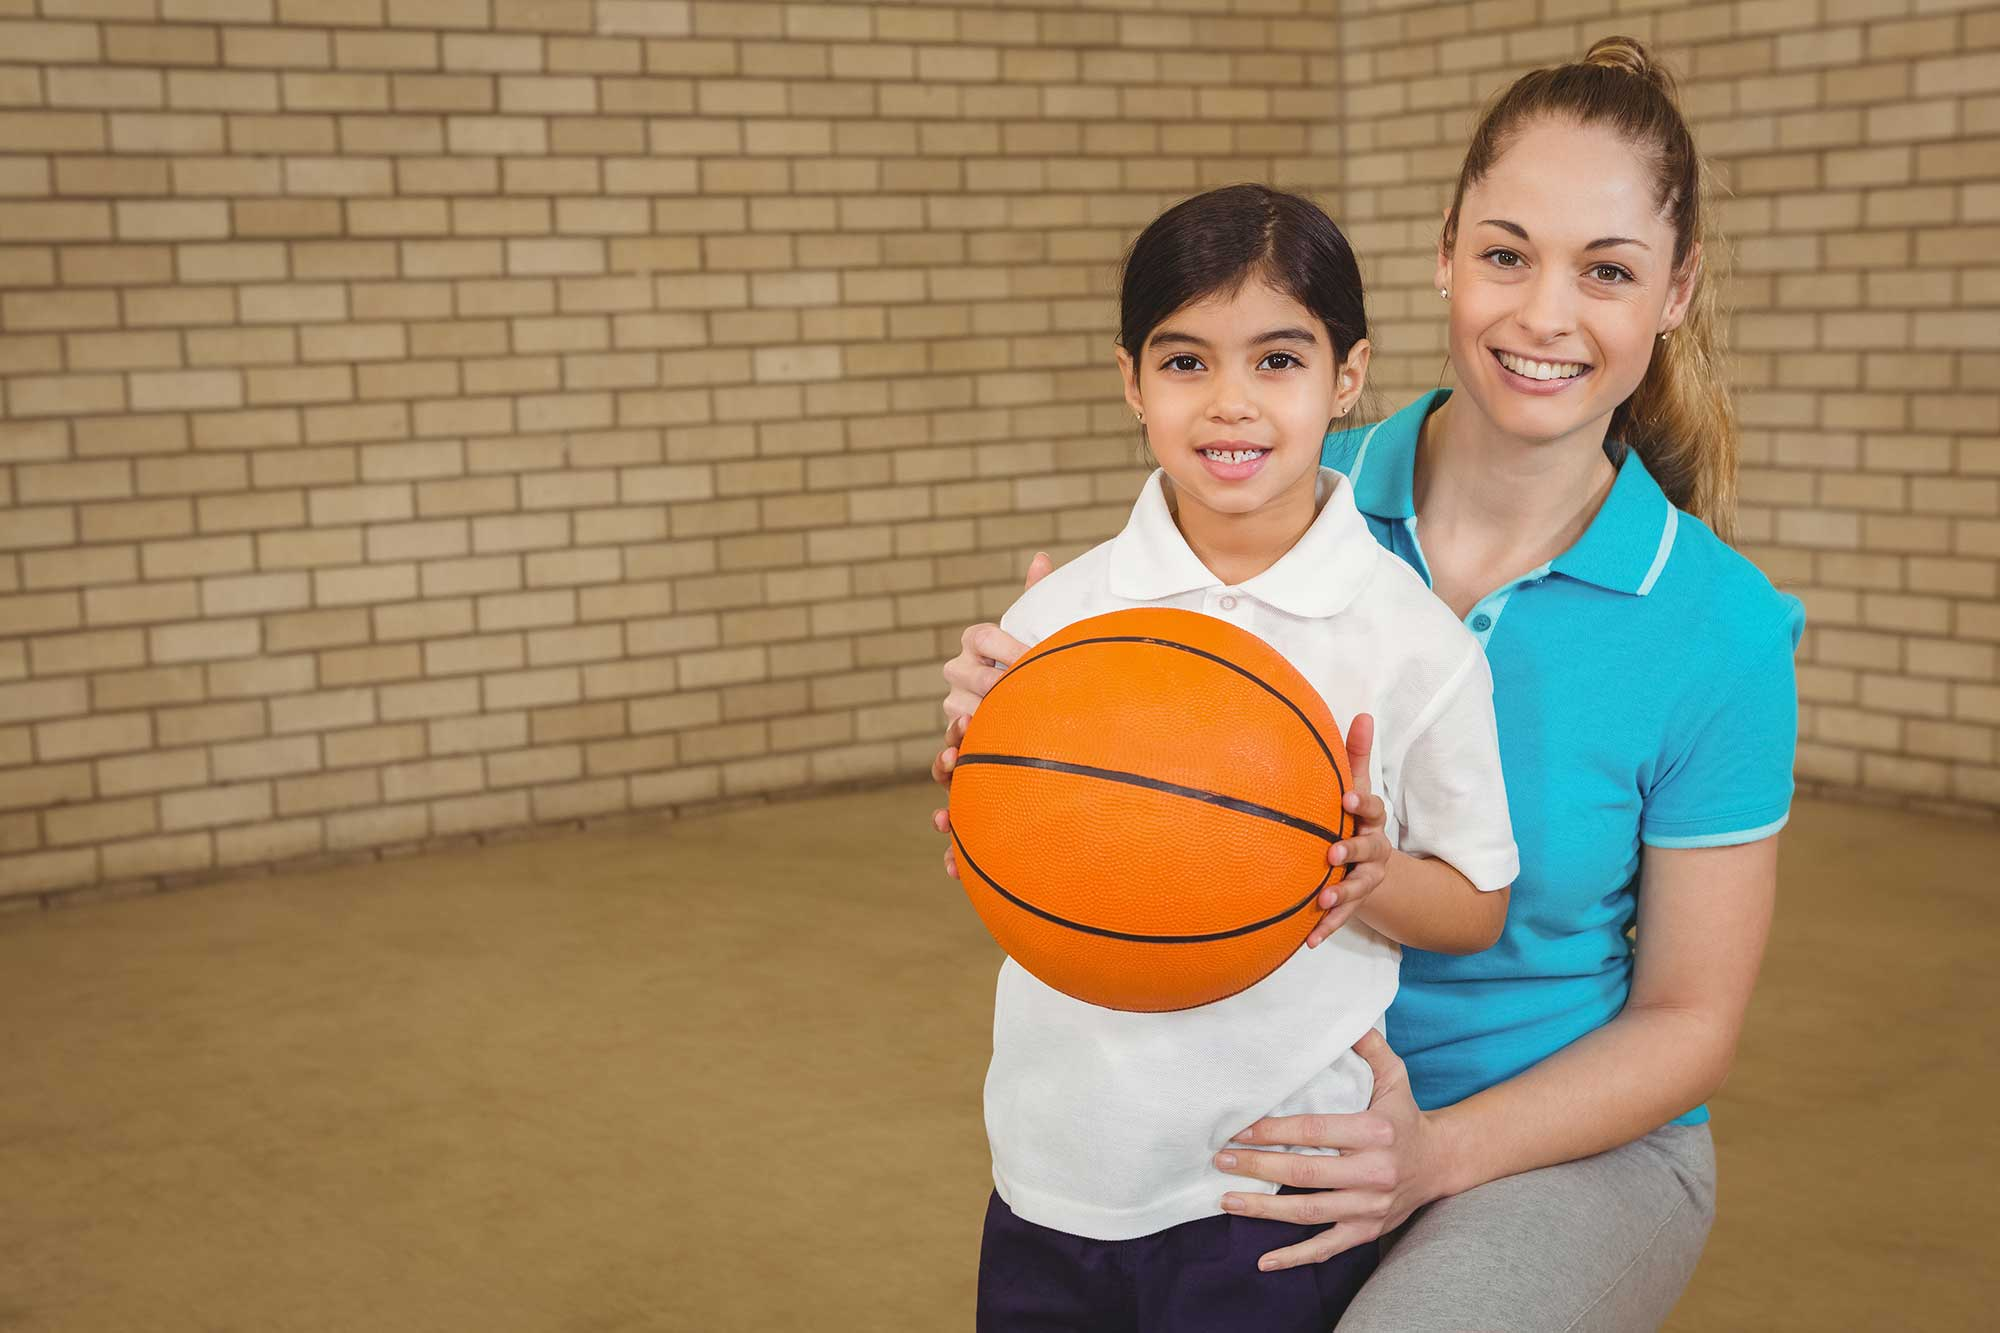 physical education teacher with child